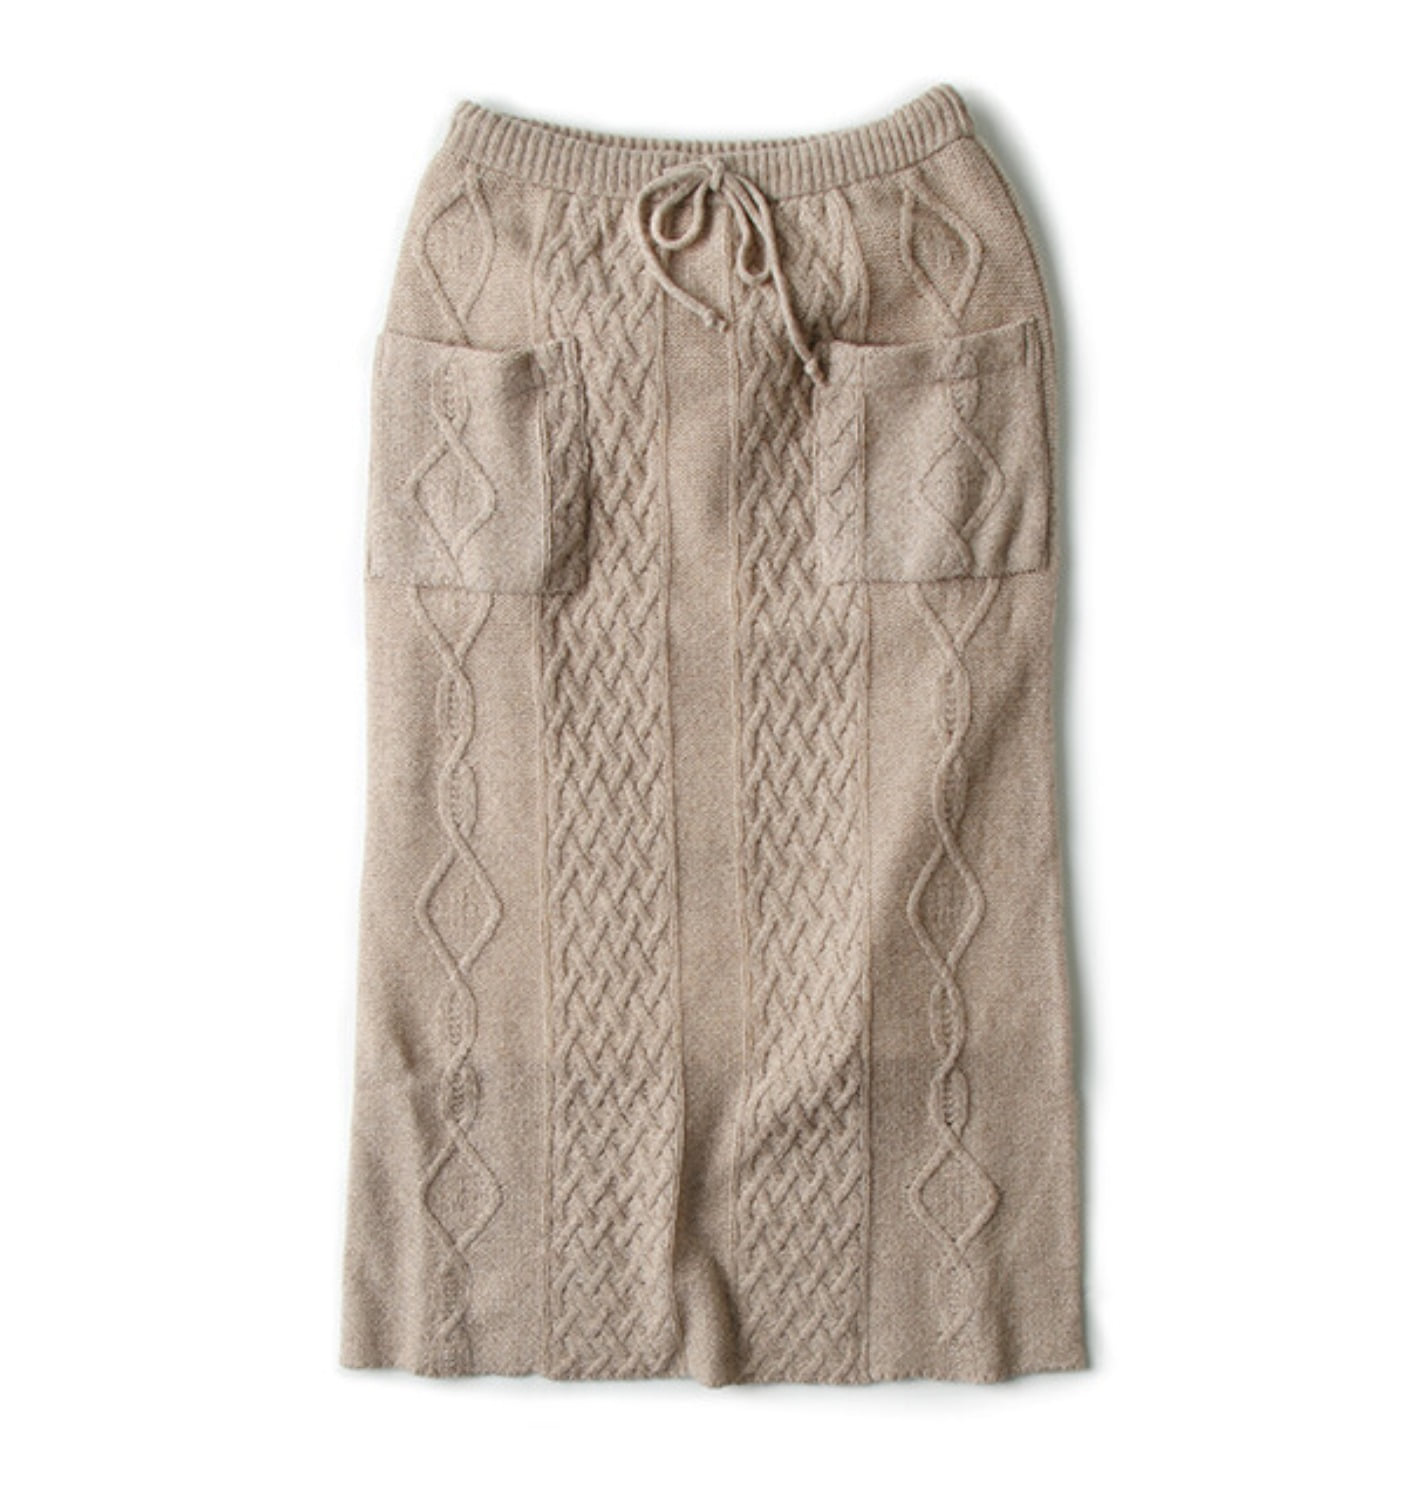 5G CABLE KNIT SKIRT BEIGE